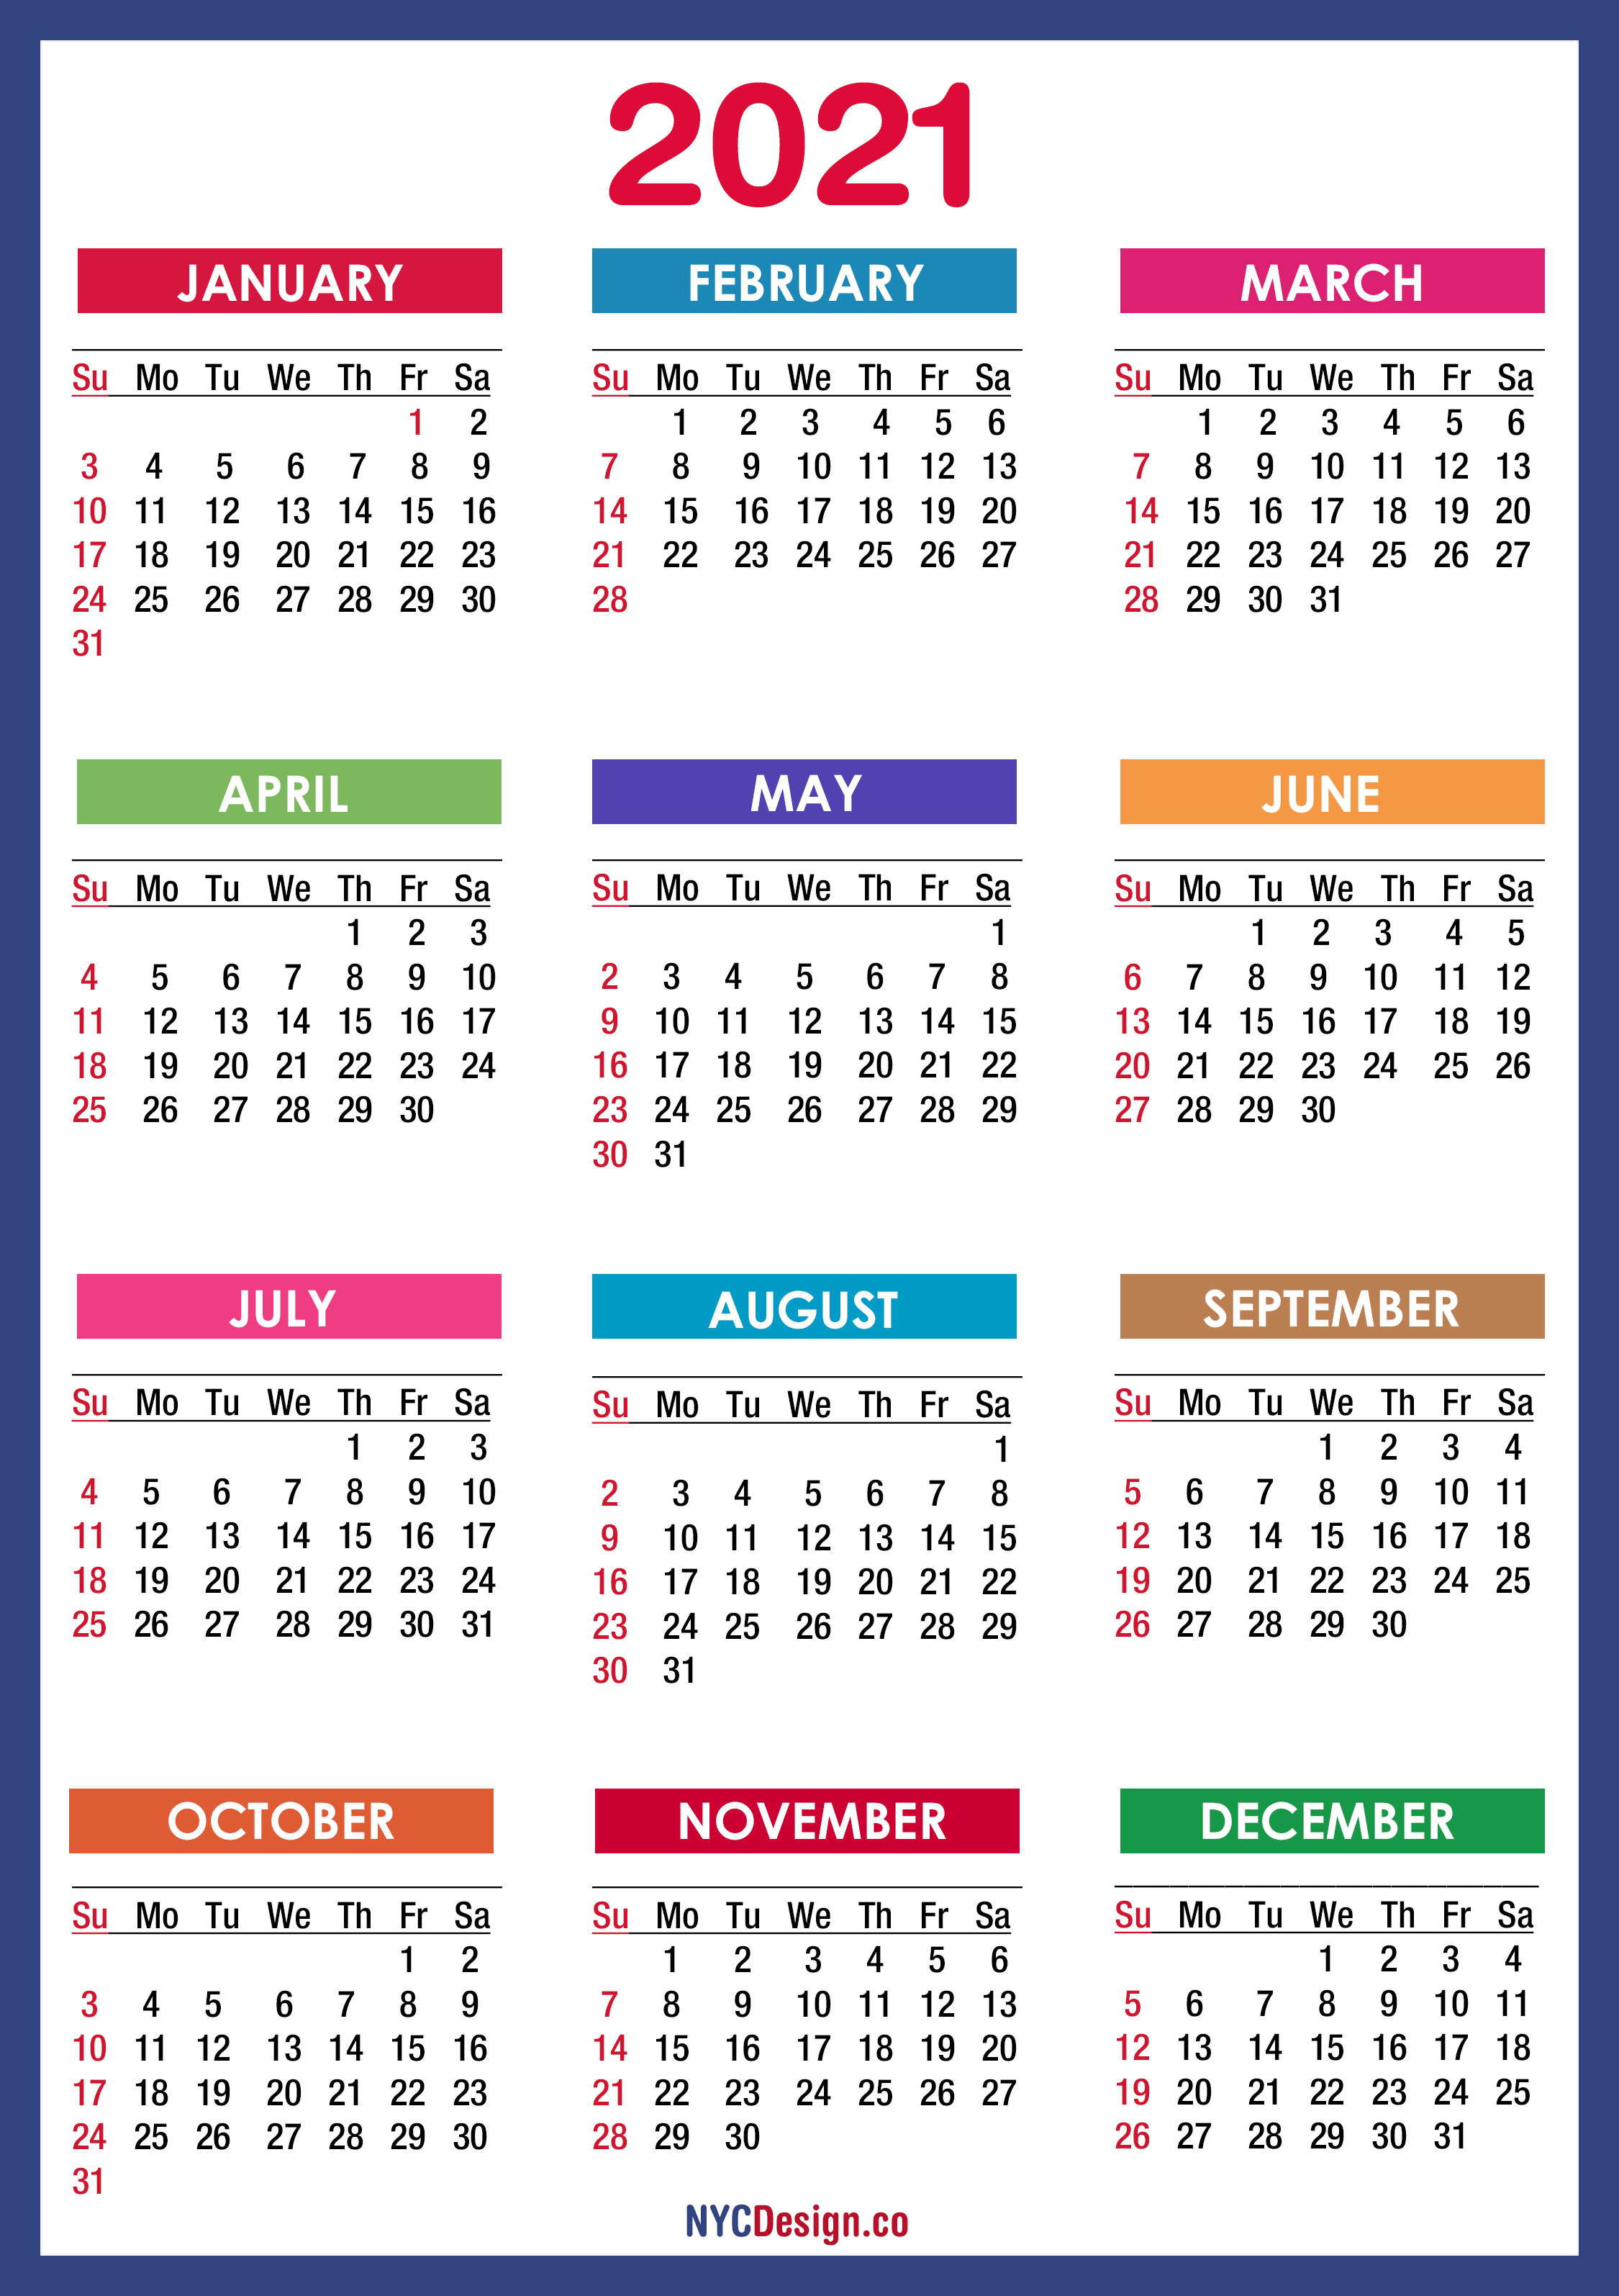 2021 Calendar Printable Free, Pdf, Colorful, Blue, Green in 2021 Printable Calendar Free